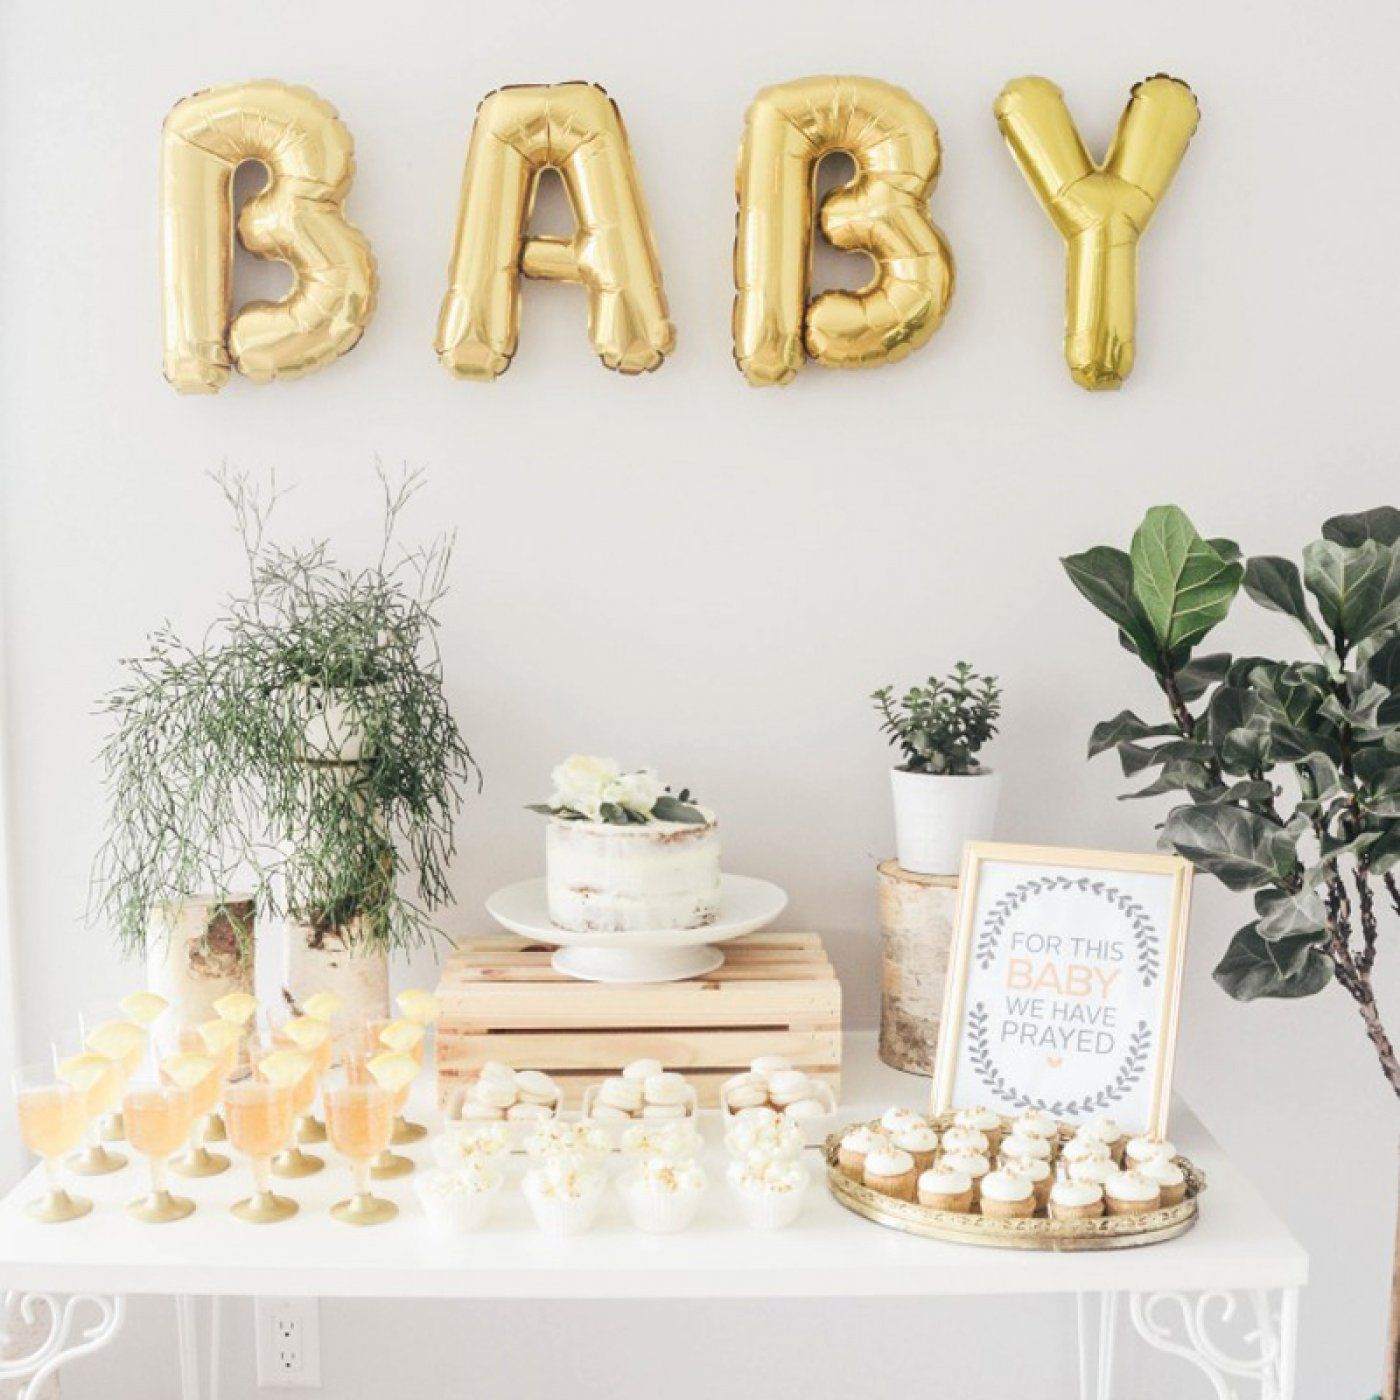 10 id es organiser une baby shower r ussie baby shower pinterest collection de robes id e. Black Bedroom Furniture Sets. Home Design Ideas